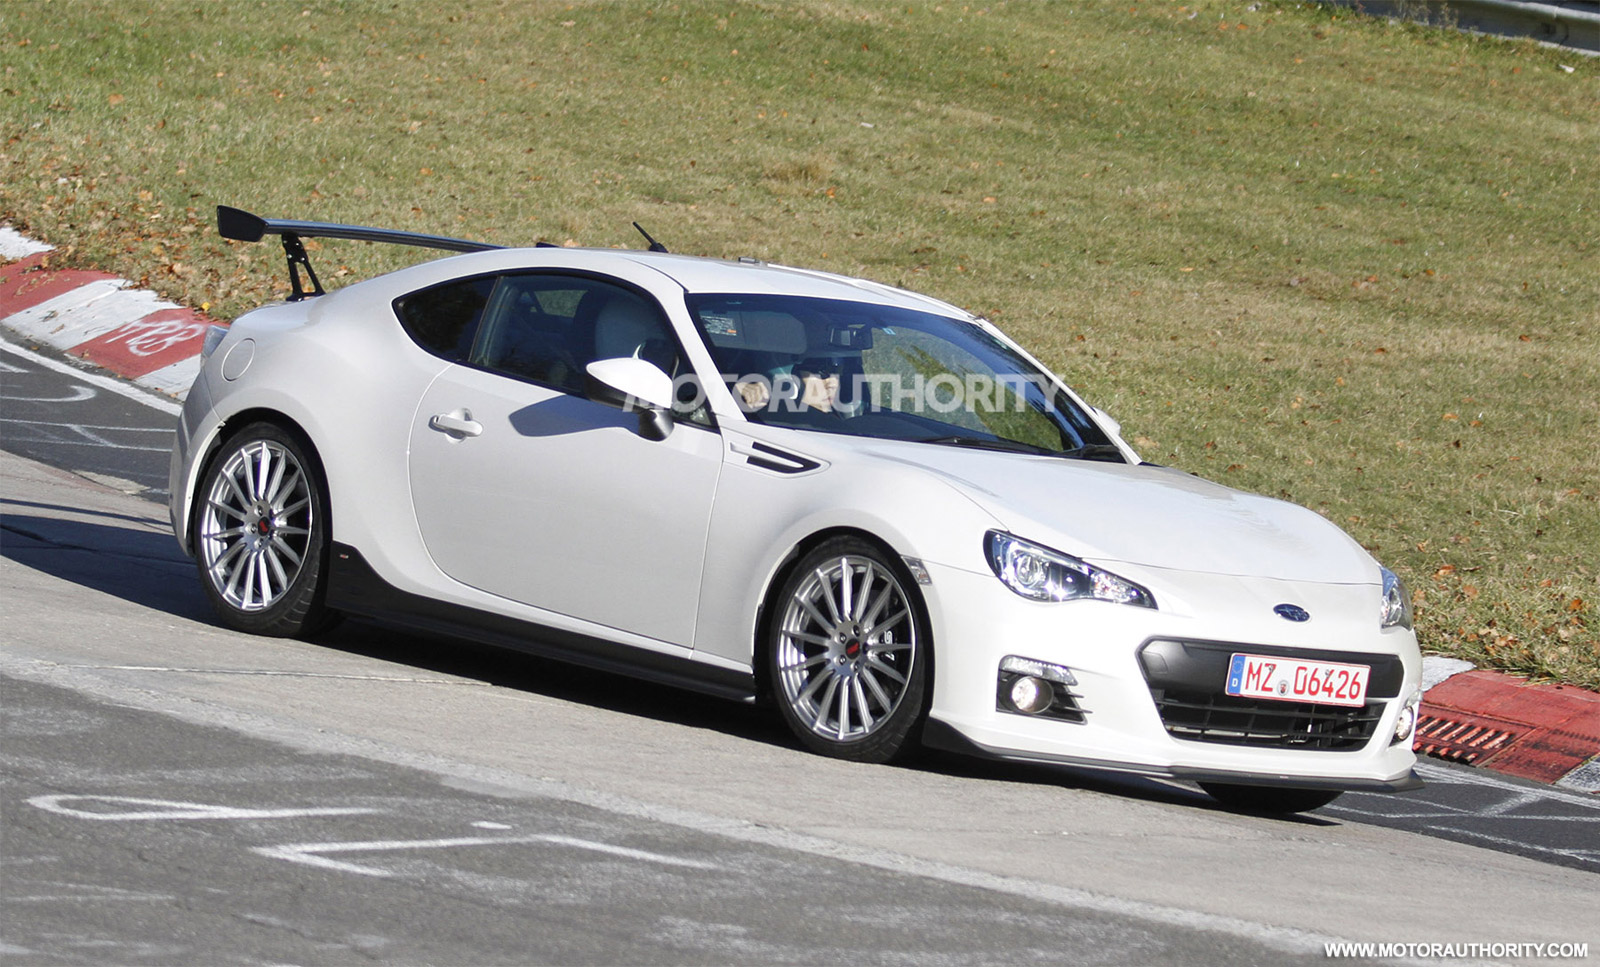 2017 Brz Sti >> 2014 Subaru BRZ STI To Offer Up To 230 HP Sans Turbo: Report